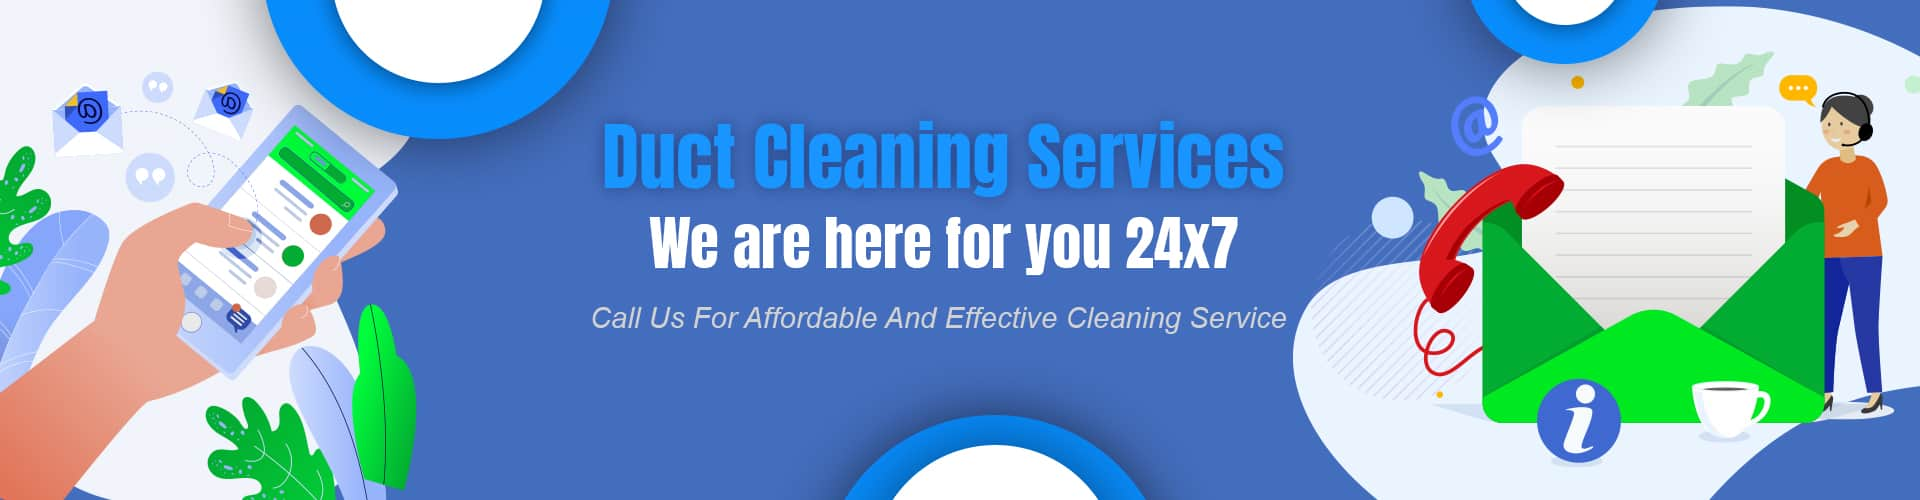 Contact Us For Duct Cleaning Services